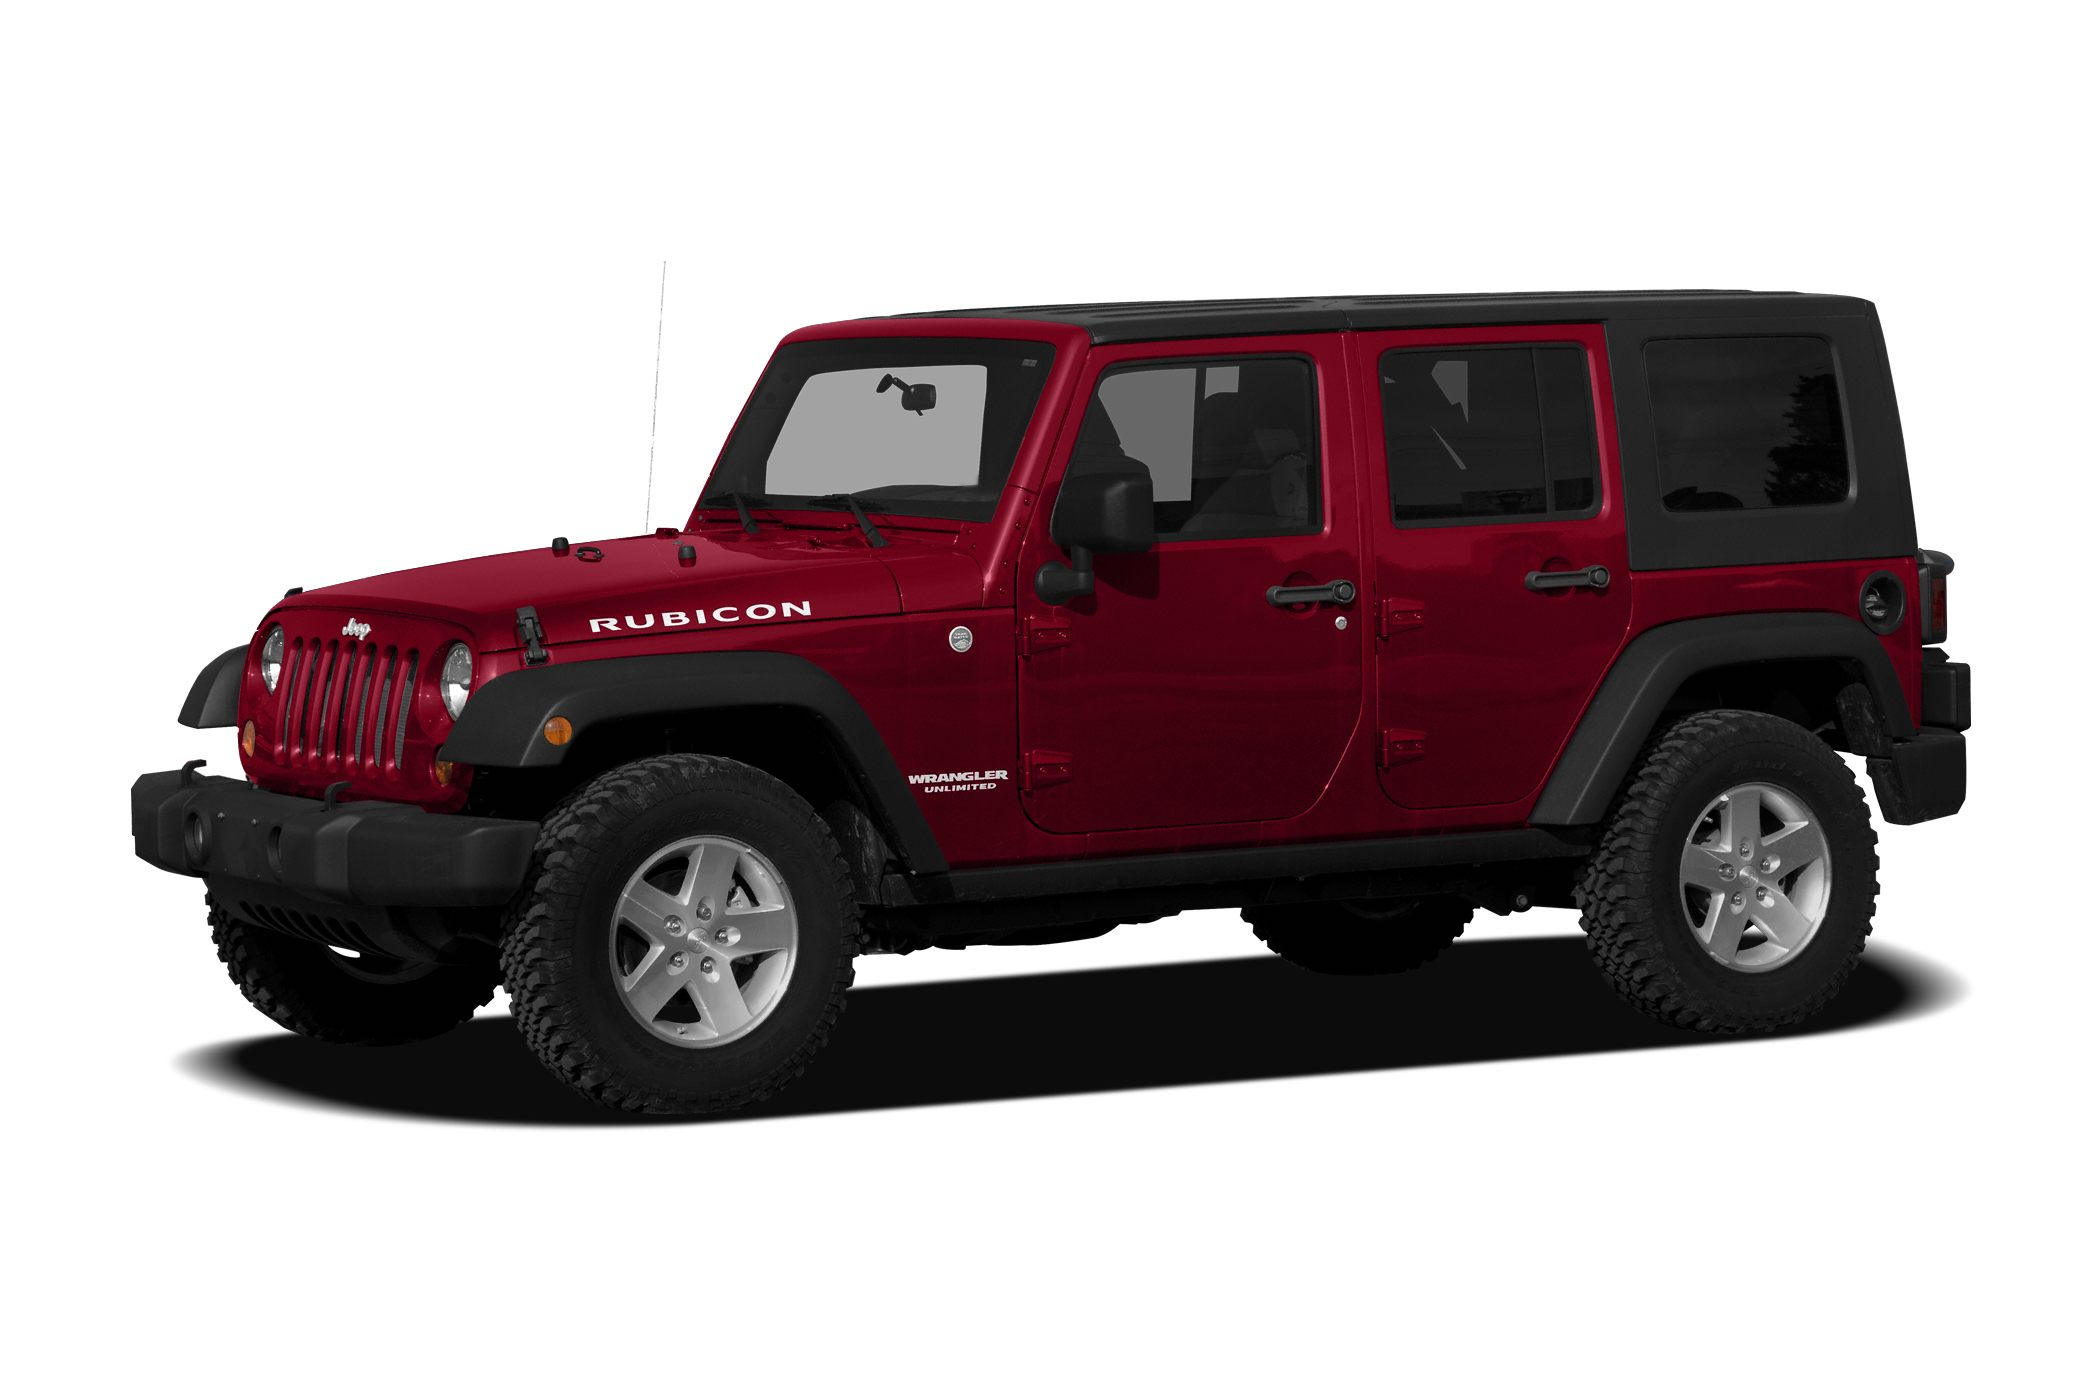 2008 Jeep Wrangler Unlimited Rubicon SUV for sale in Sacramento for $23,723 with 90,285 miles.